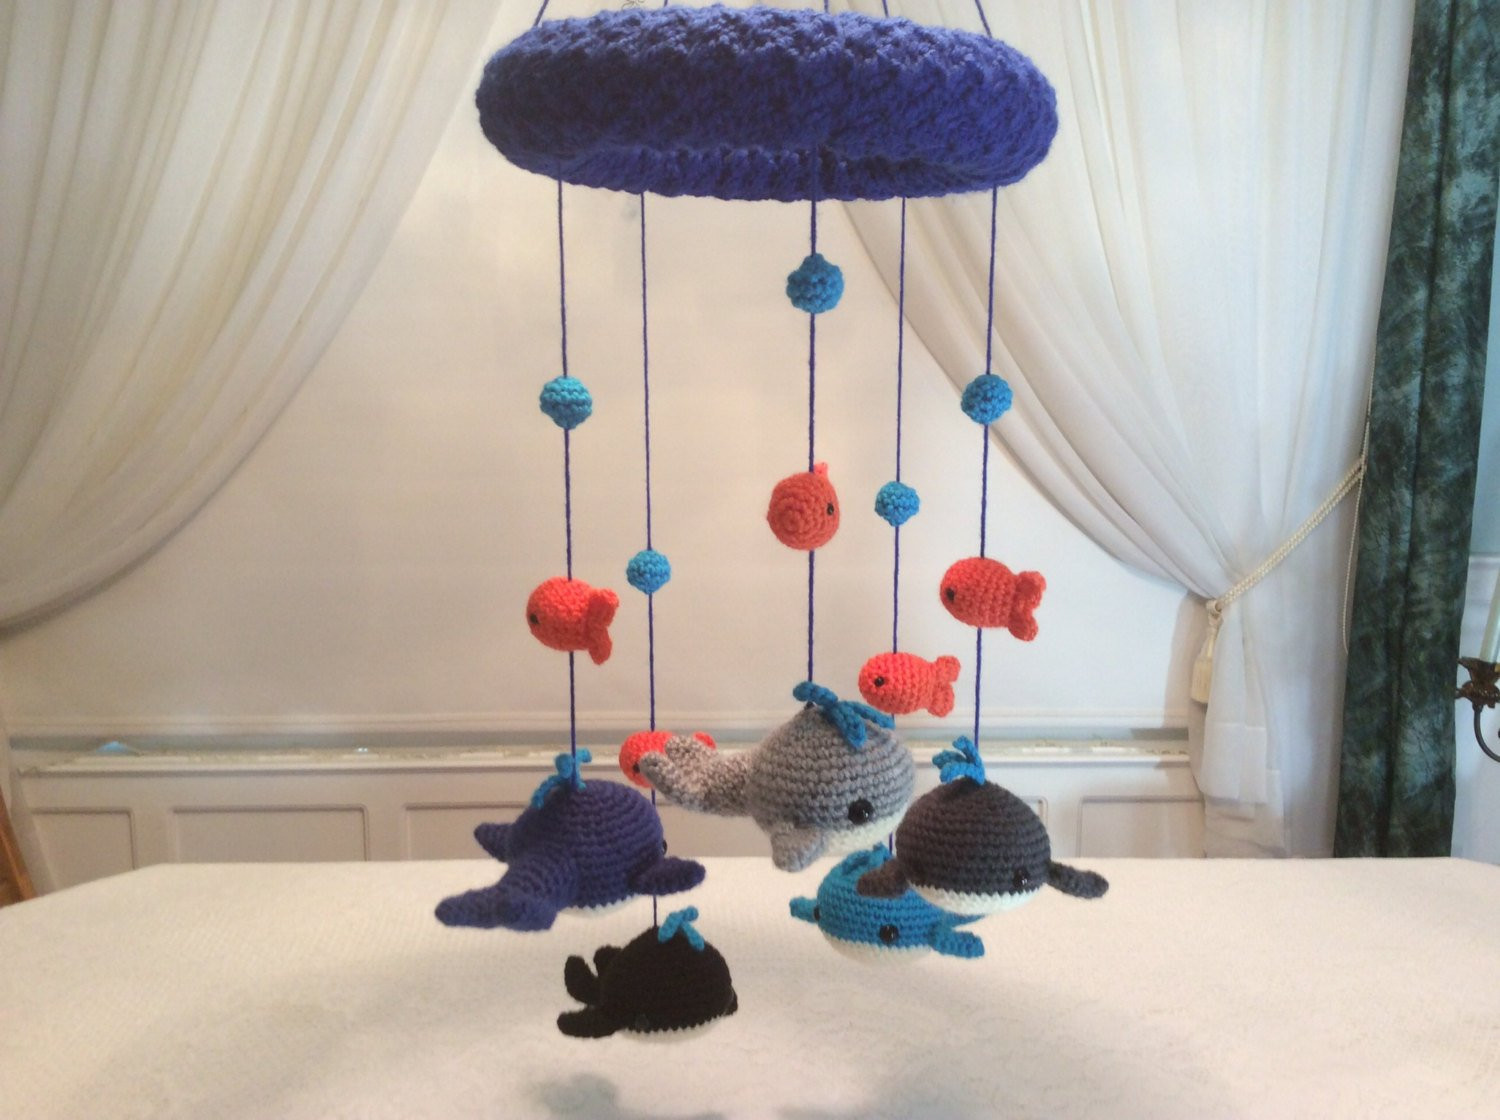 Whale and goldfish baby mobile tutorial crochet pattern